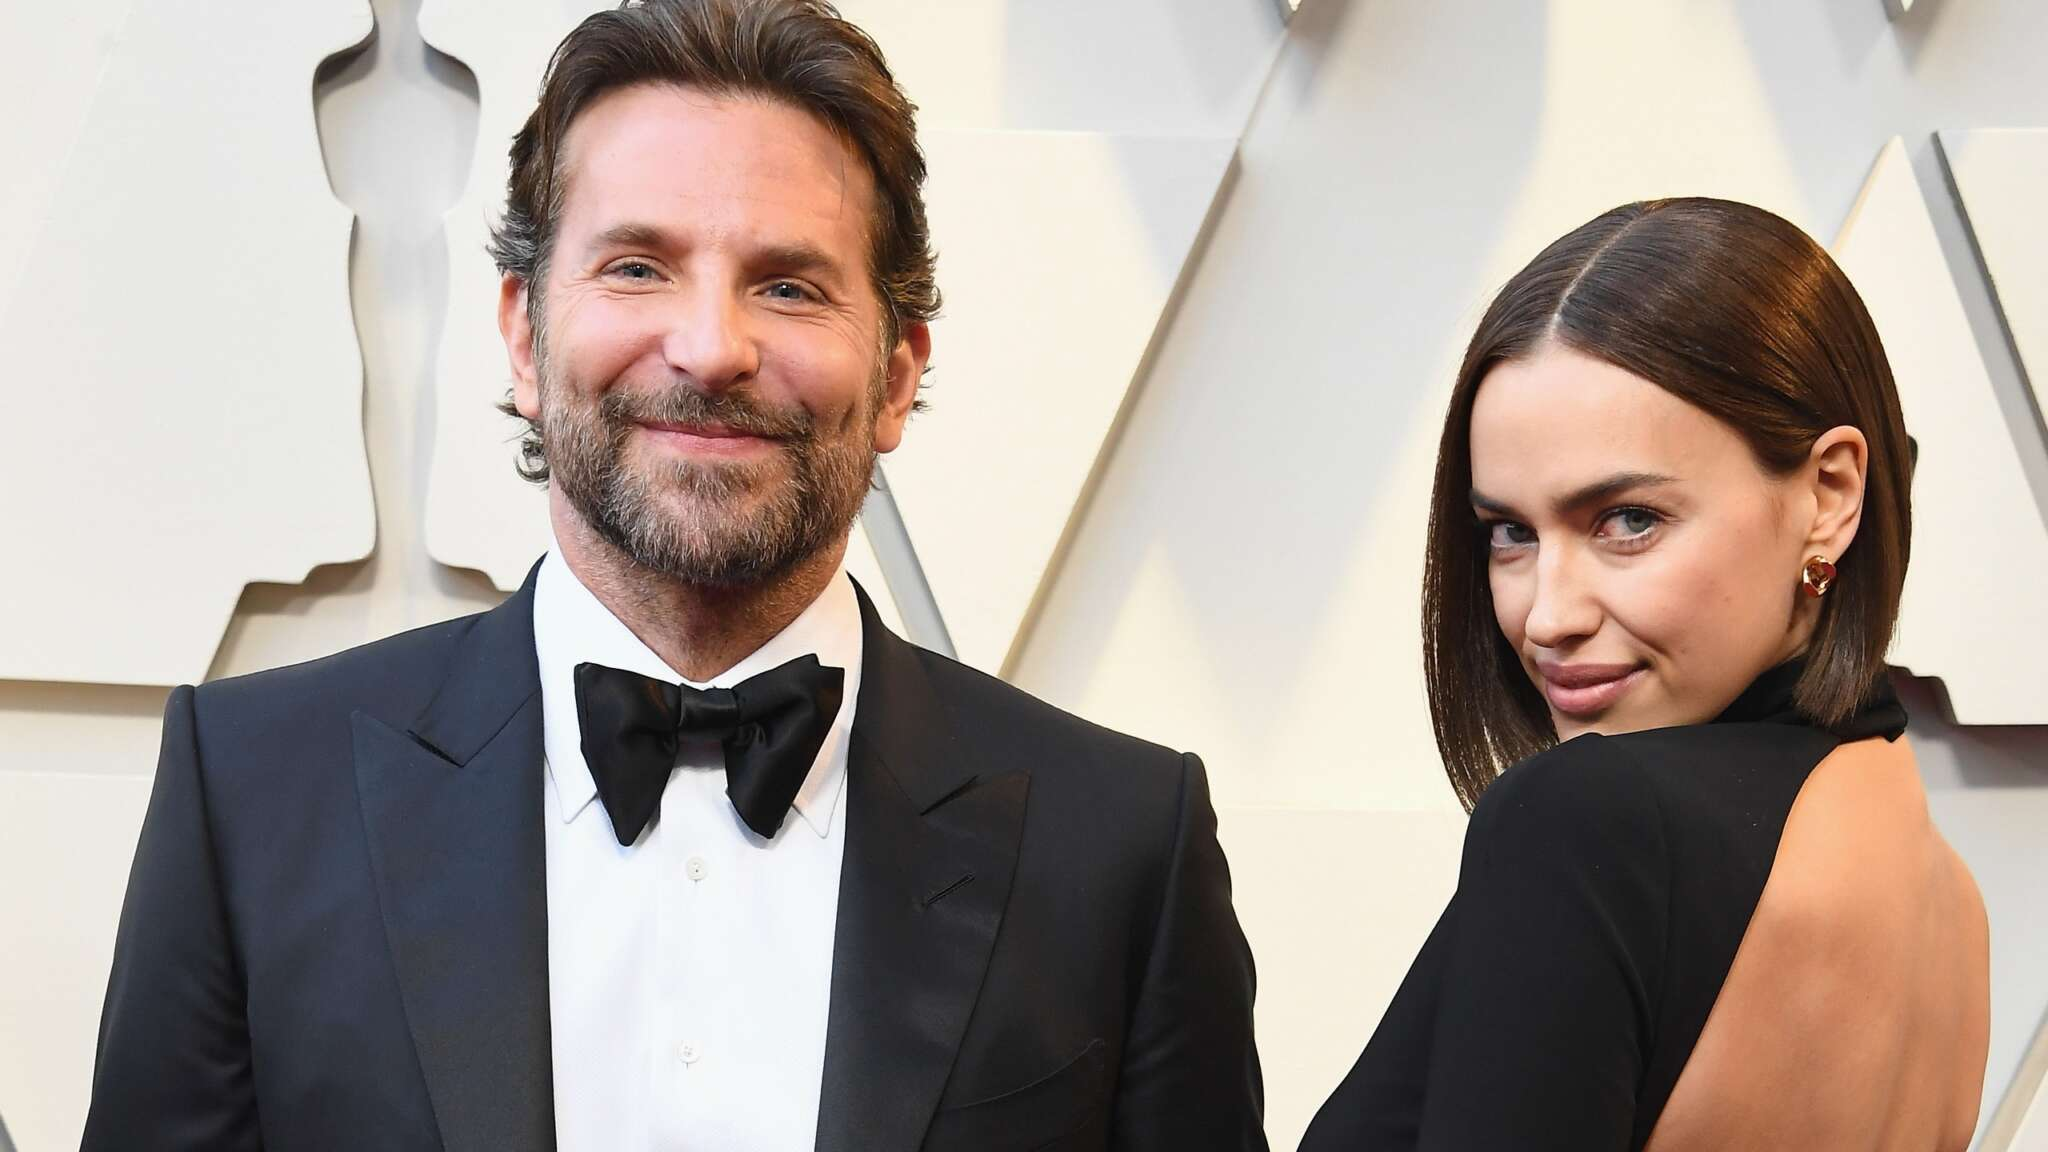 irina-shayk-explains-why-she-never-talks-about-her-and-bradley-coopers-relationship-and-split